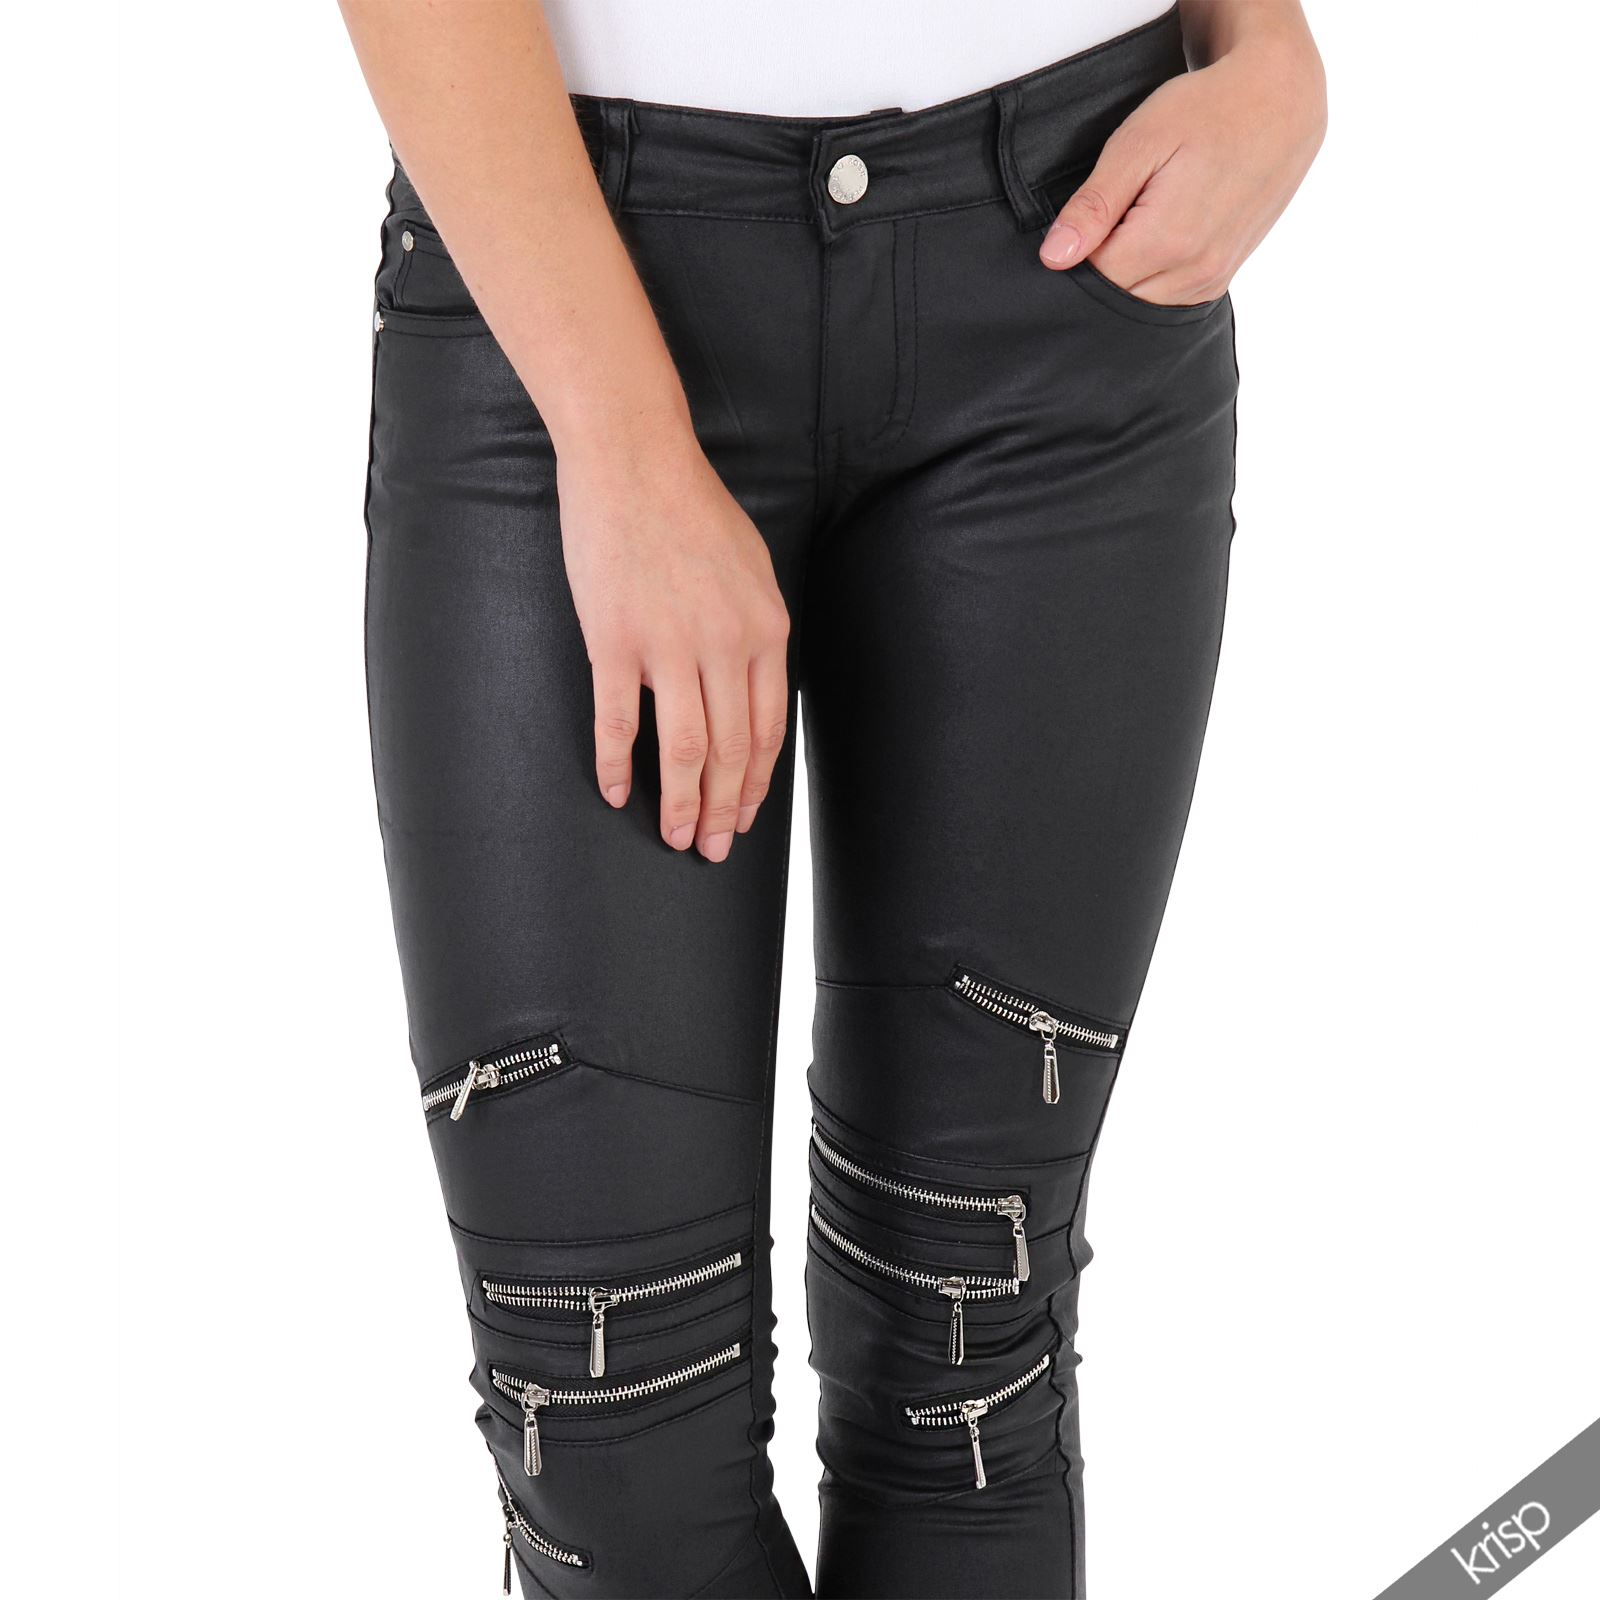 damen slim stretch hose lederoptik biker lederhose leggings zierrei verschl sse ebay. Black Bedroom Furniture Sets. Home Design Ideas